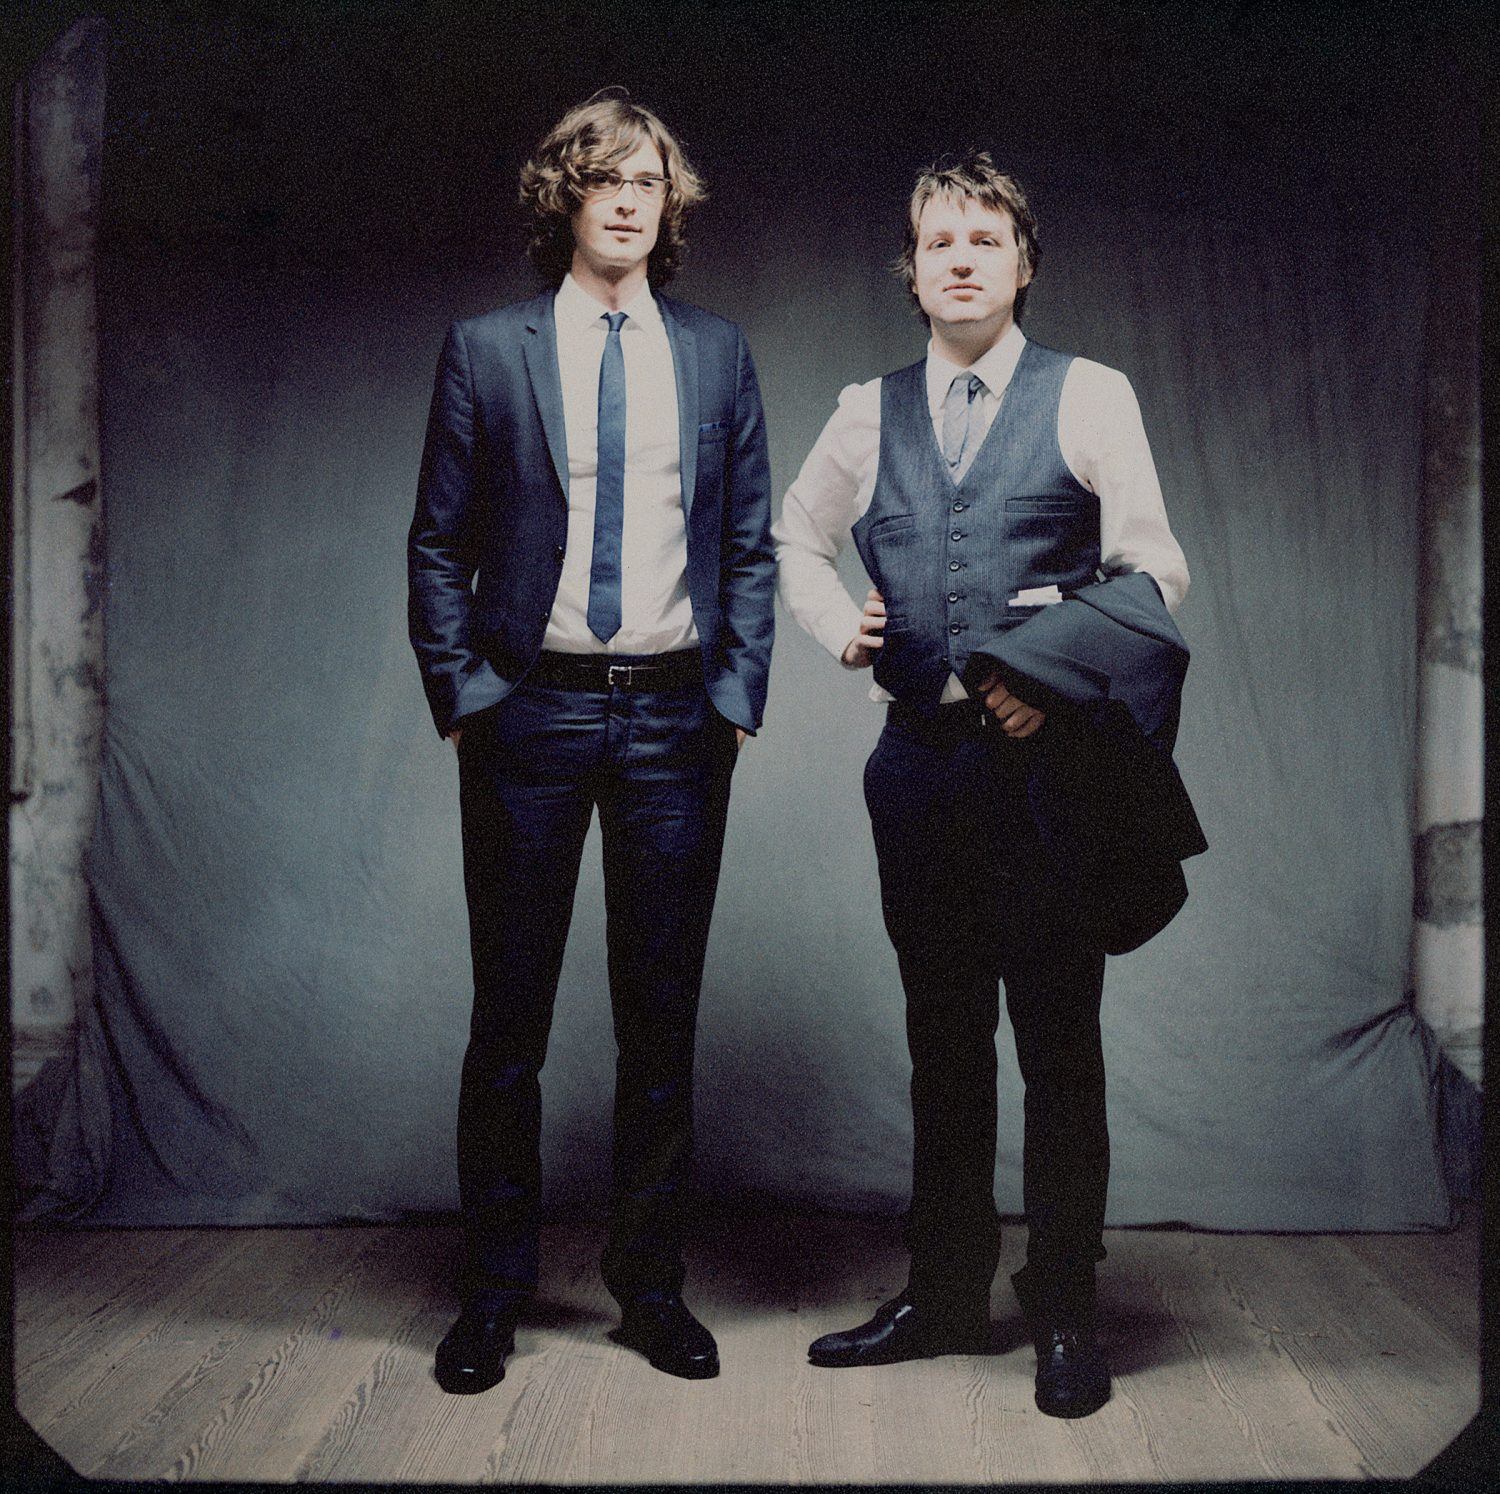 The Milk Carton Kids Deliver a Chilled-Out Pink Floyd Cover